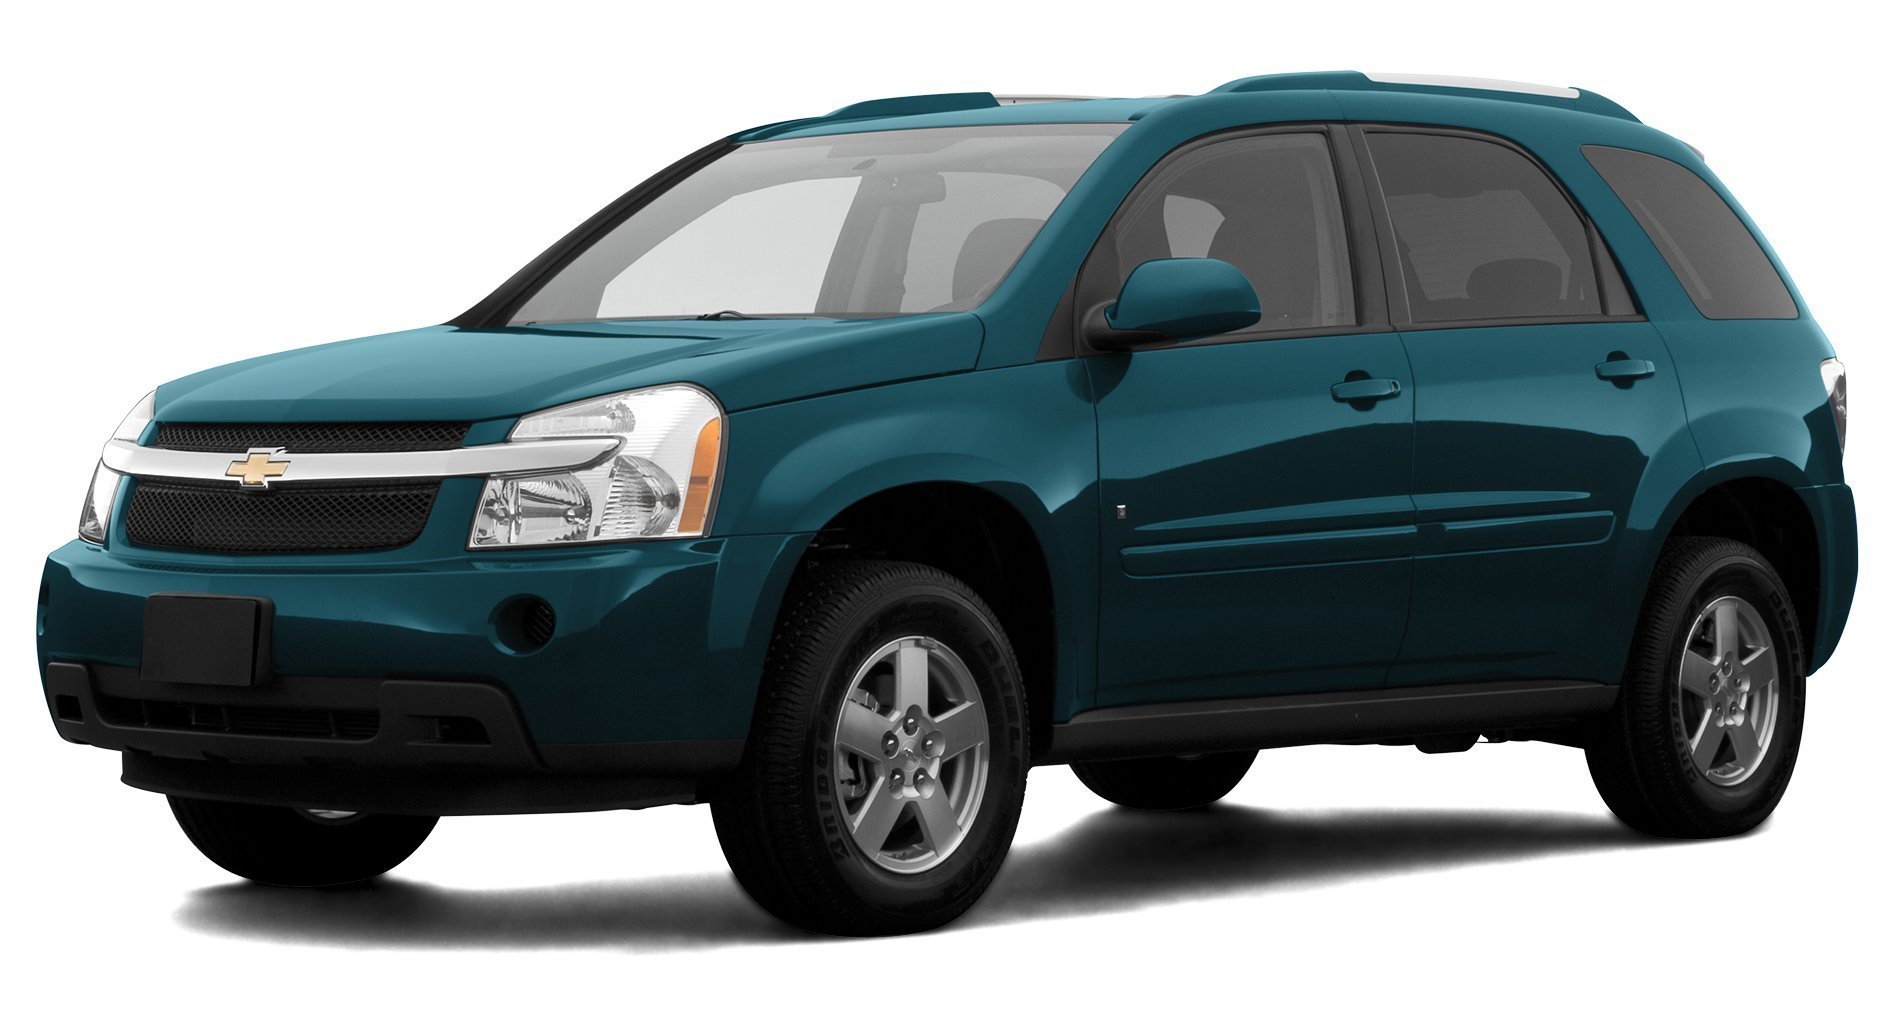 2007 chevrolet equinox reviews images and. Black Bedroom Furniture Sets. Home Design Ideas